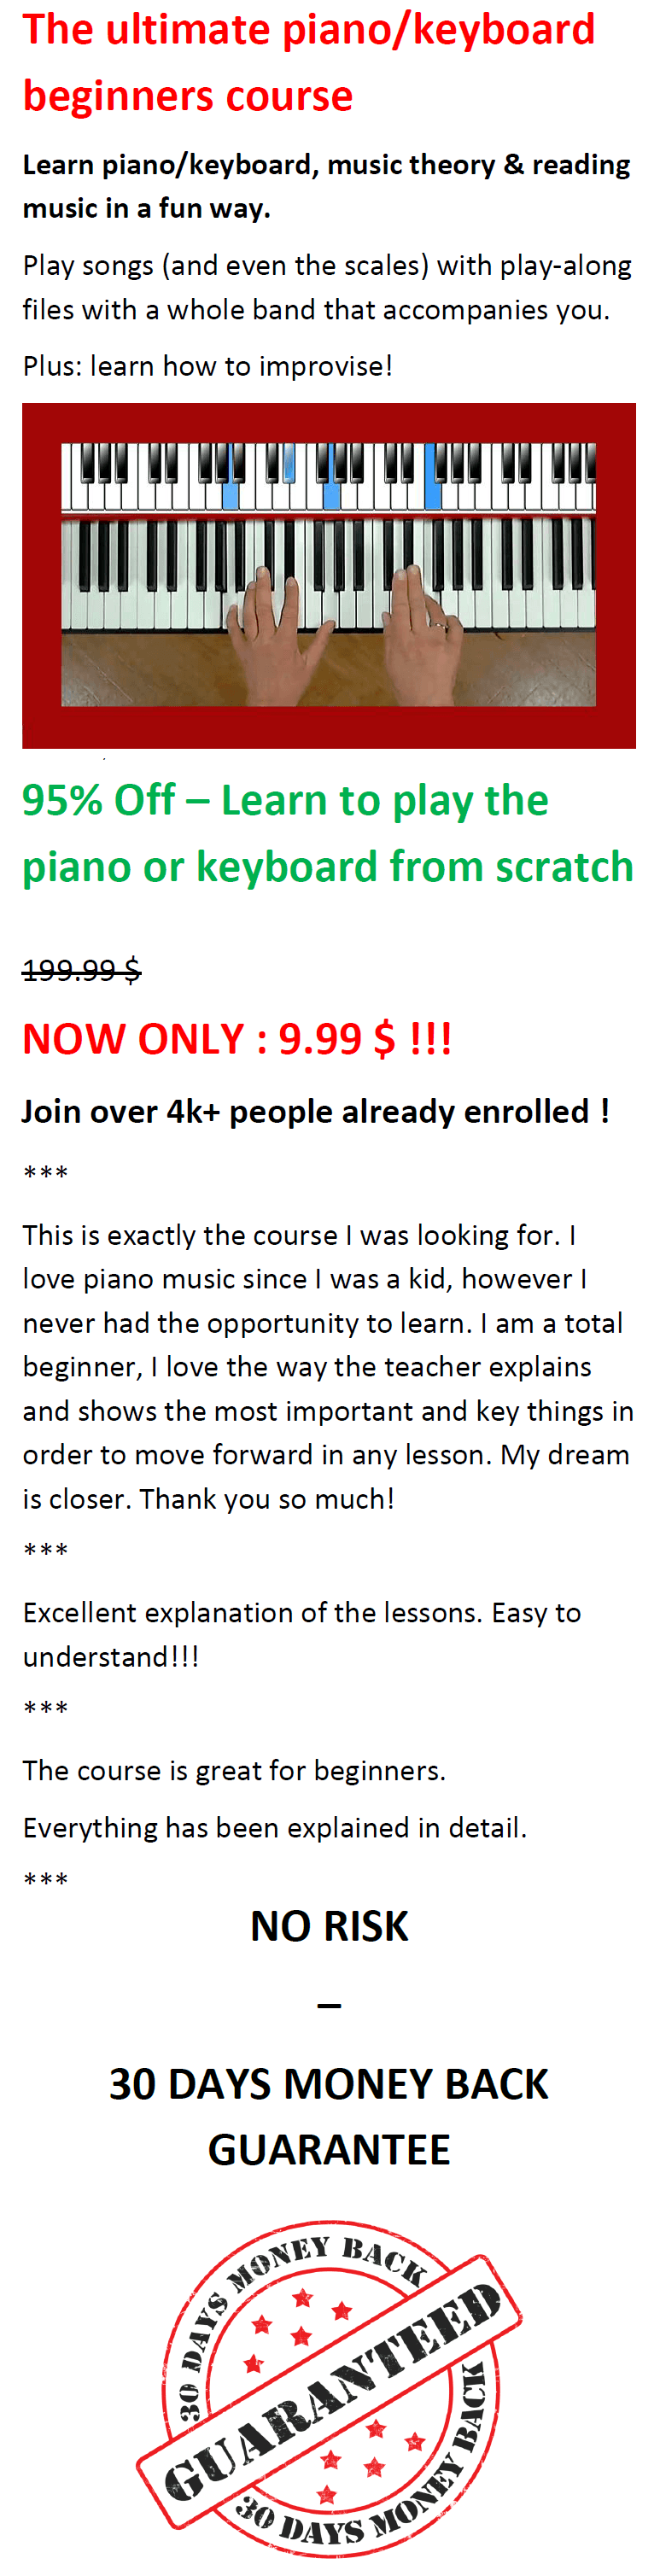 Learn piano or keyboard from scratch-2